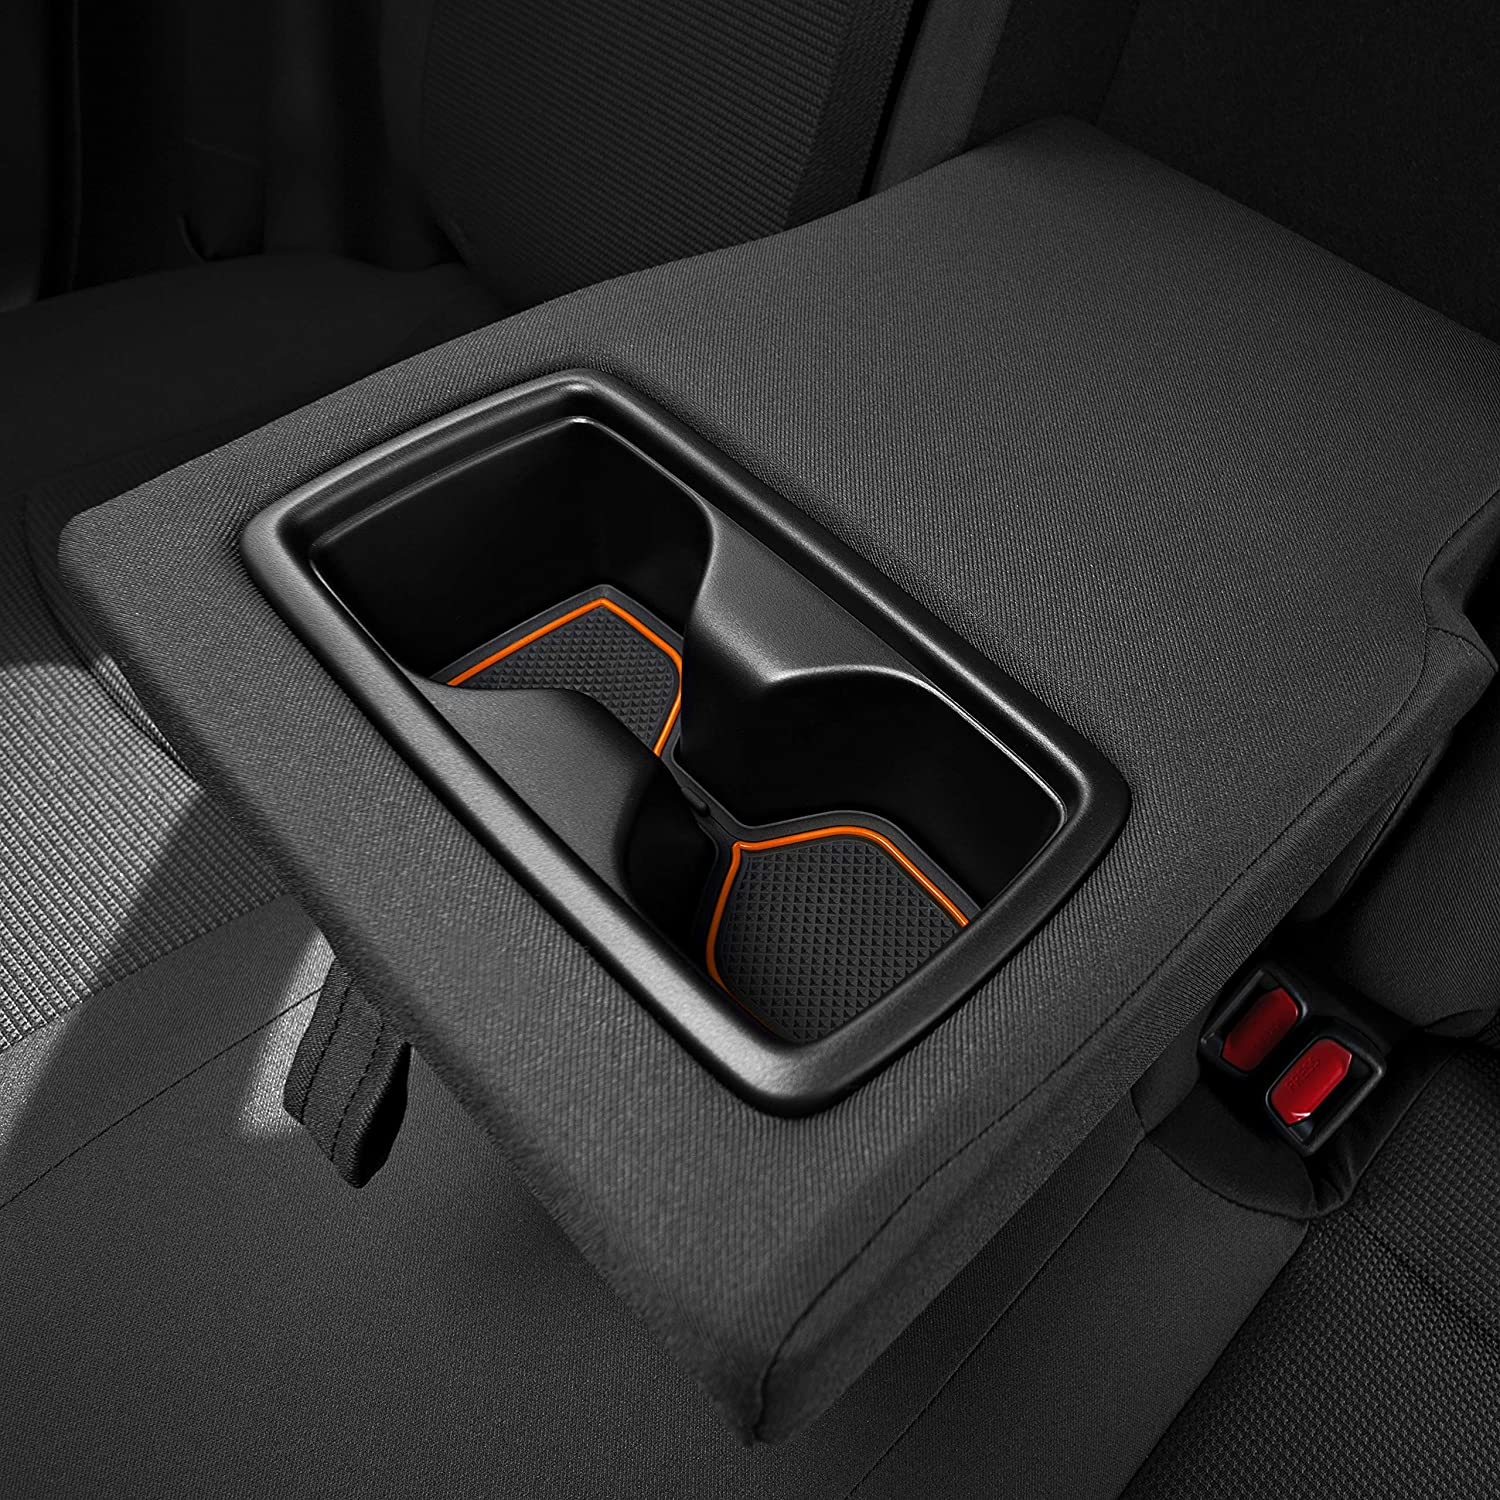 Premium Cup Holder Console and Door Pocket Inserts 13-pc Set CupHolderHero for Toyota RAV4 2019-2020 Custom Liner Accessories Solid Black